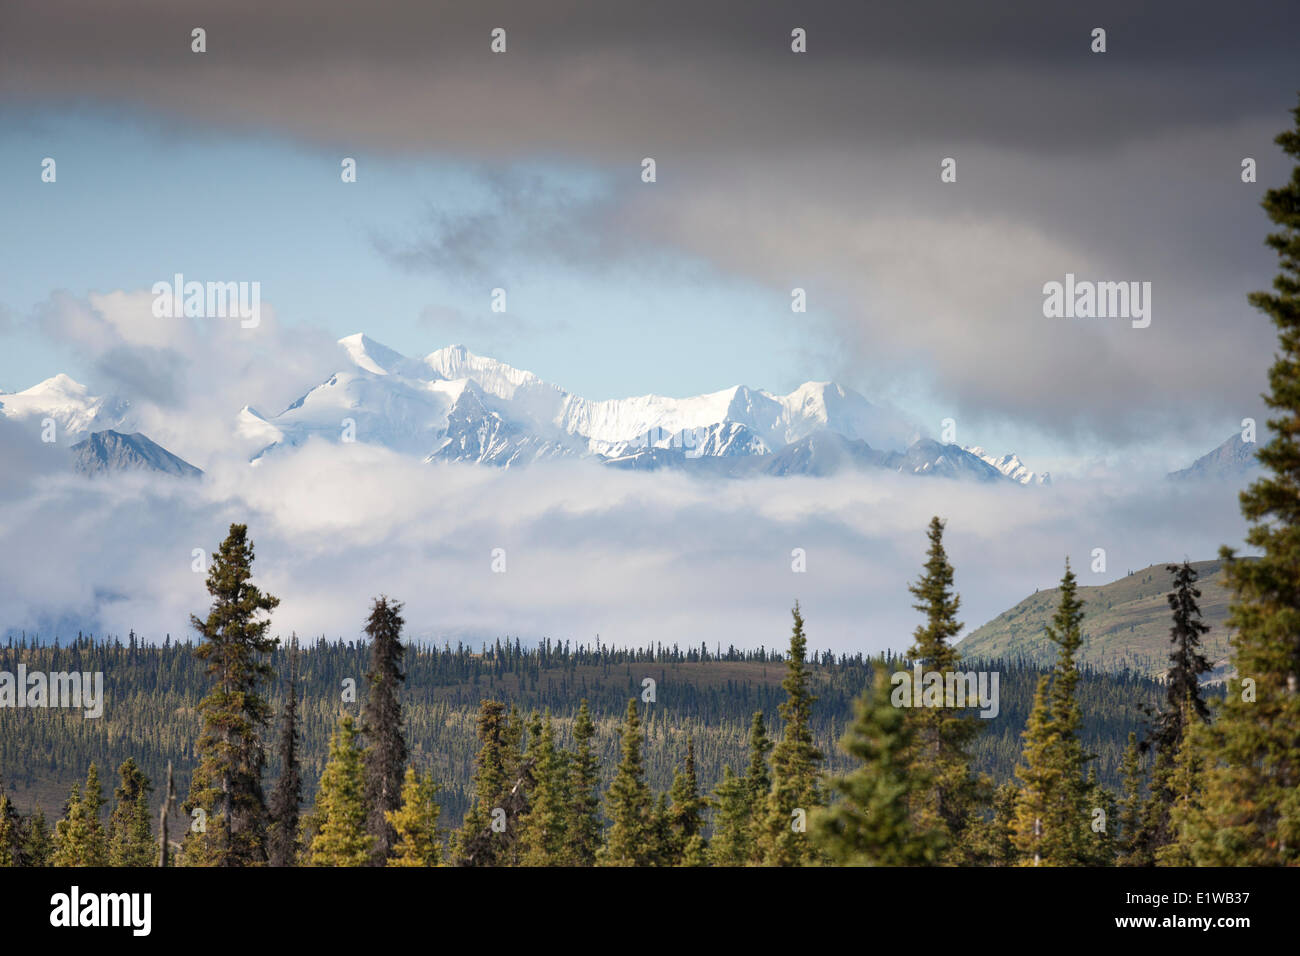 View of the Chugach Mountains from the Glenn Highway, Alaska, United States of America - Stock Image